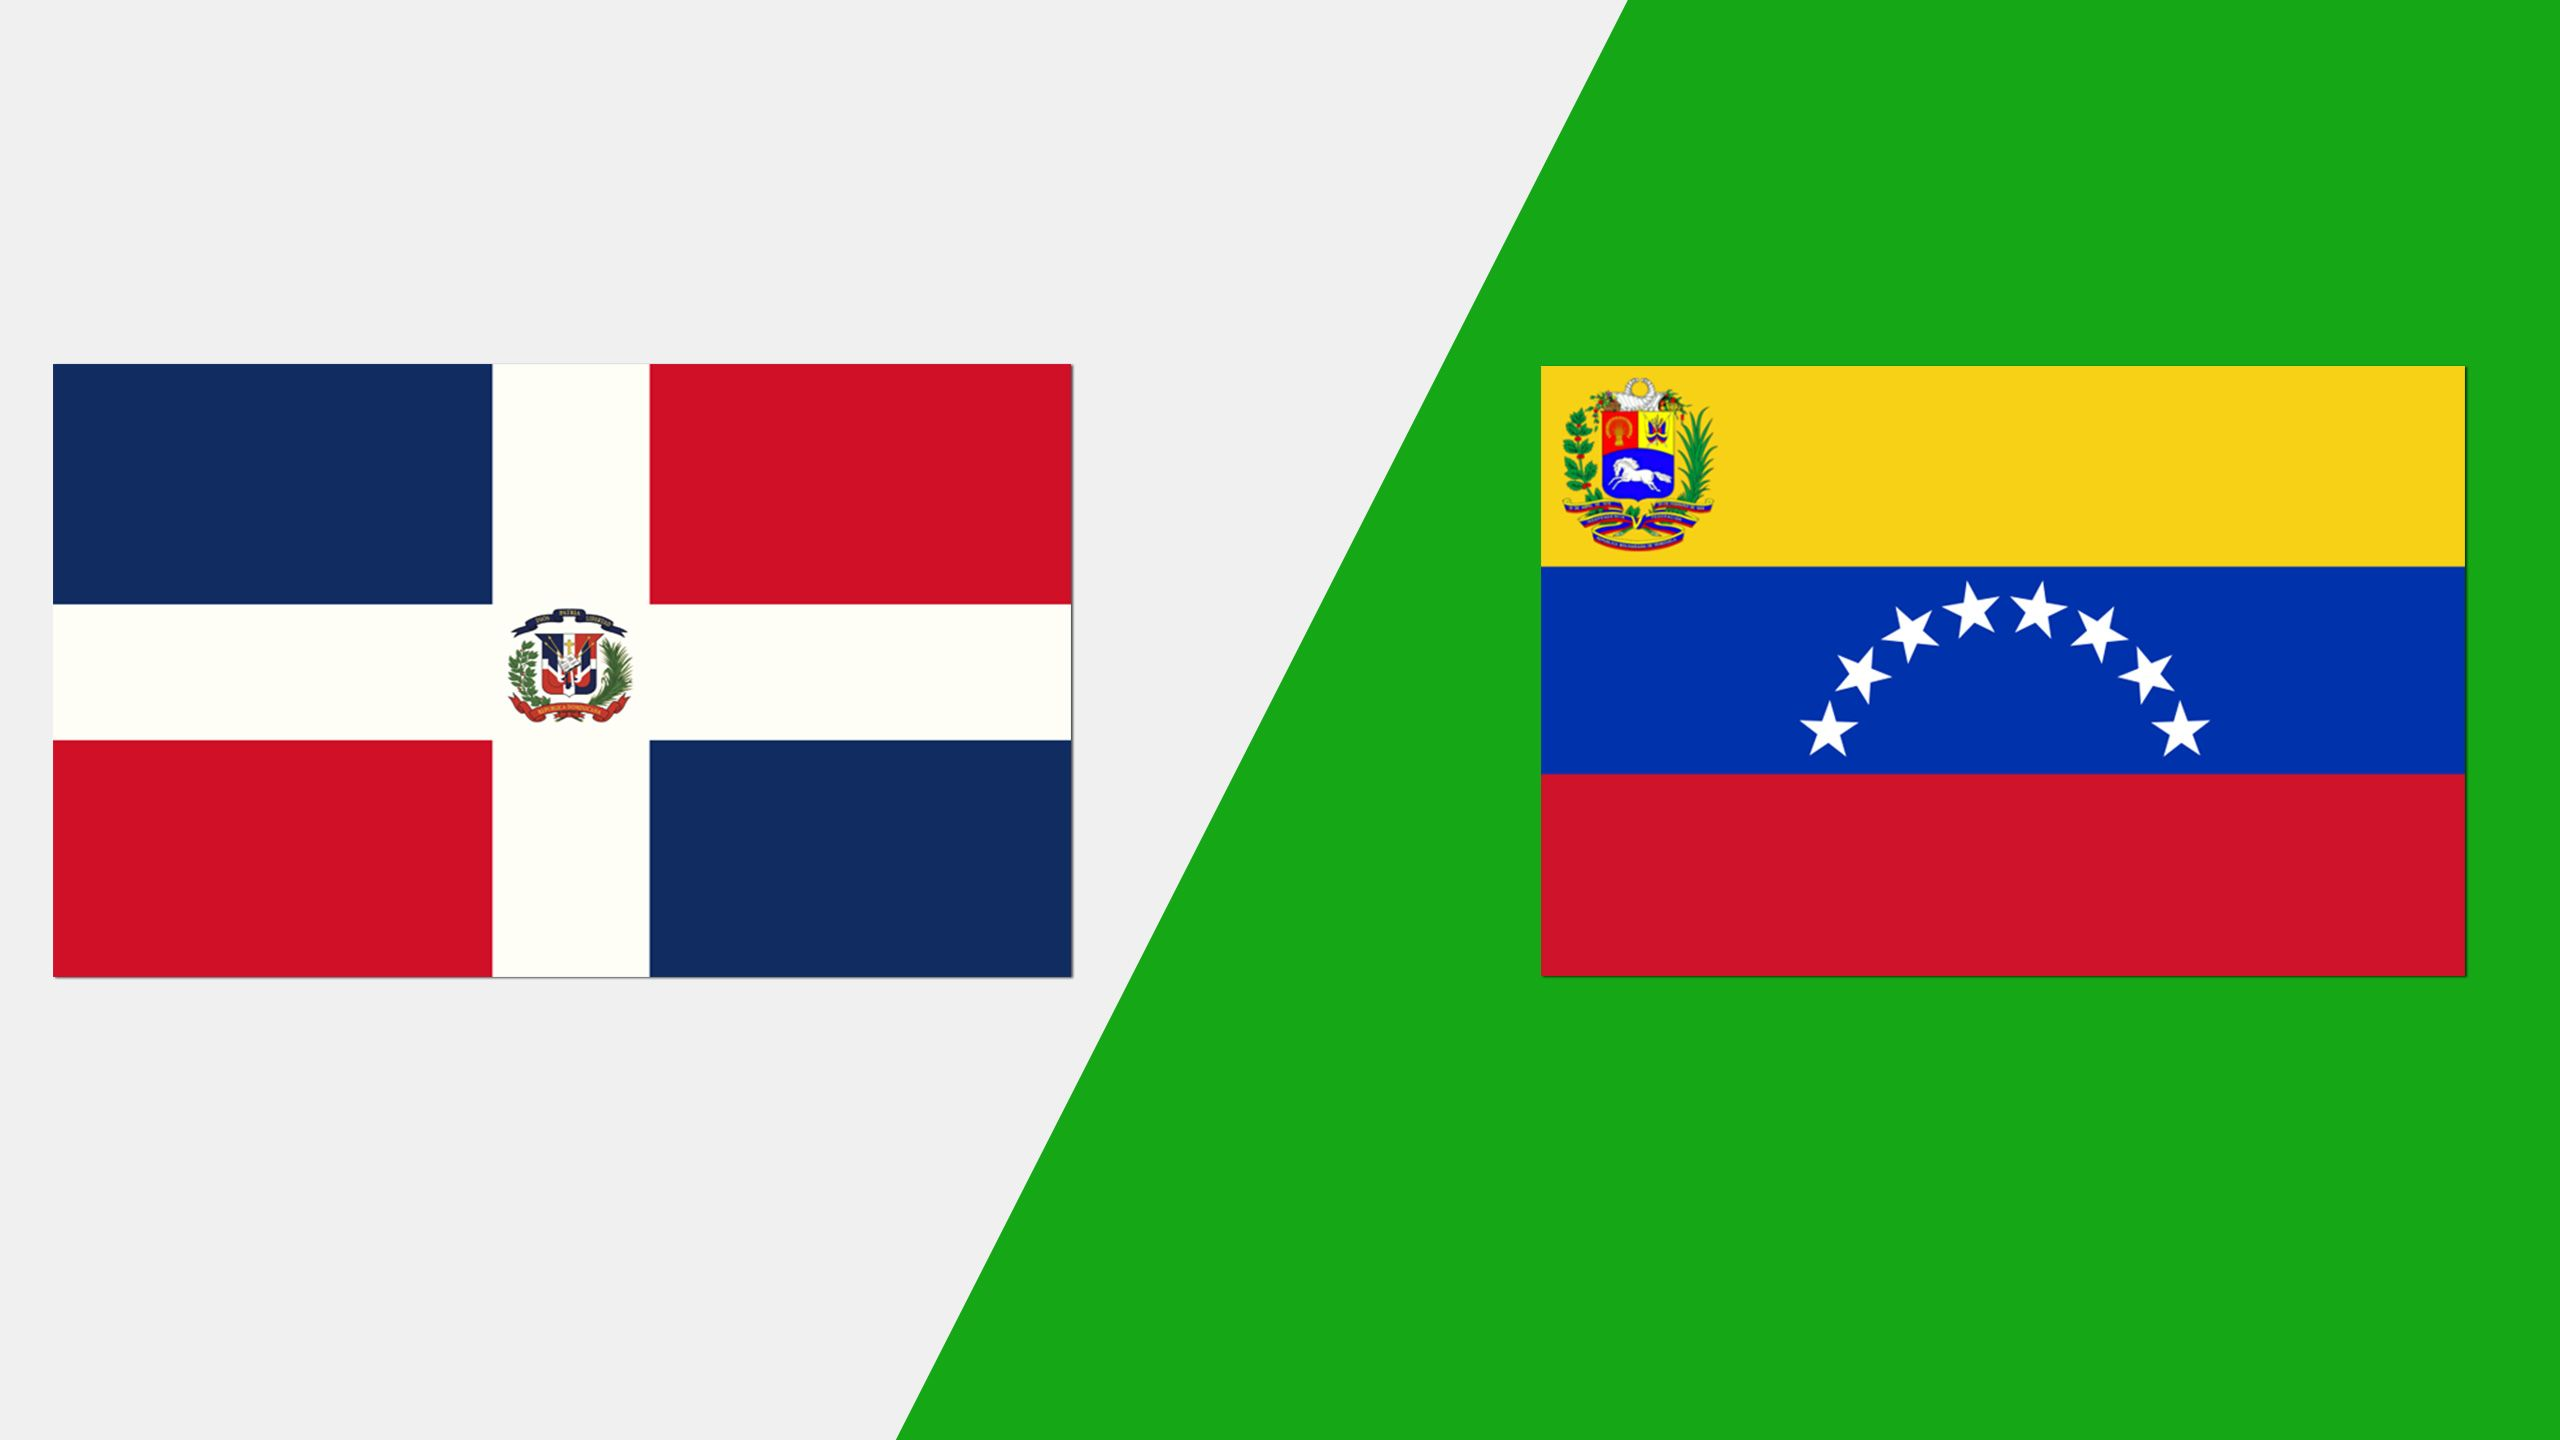 In Spanish - República Dominicana vs. Venezuela (Grupo A)